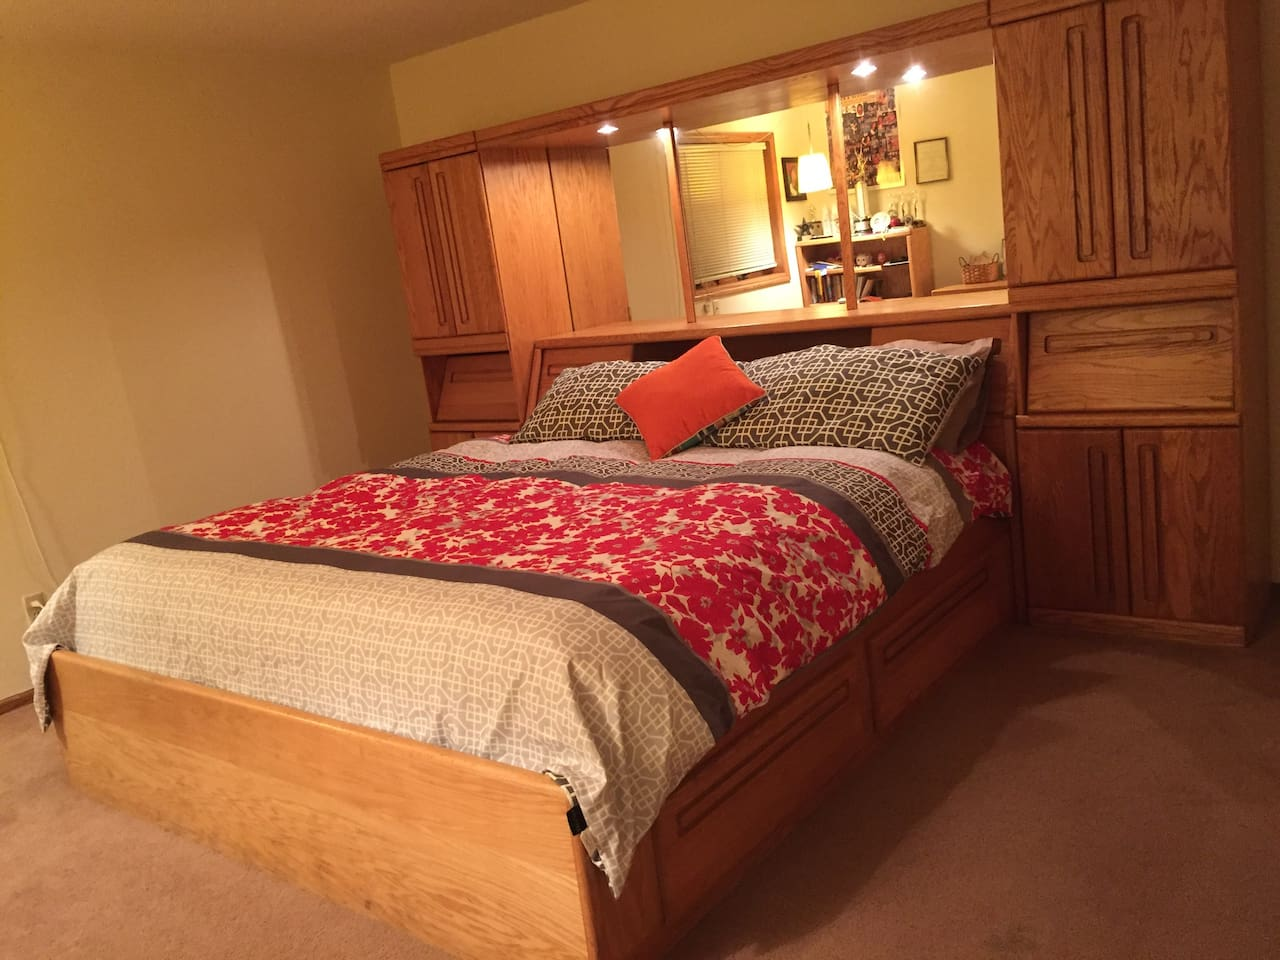 Private Spacious room with King Size bed